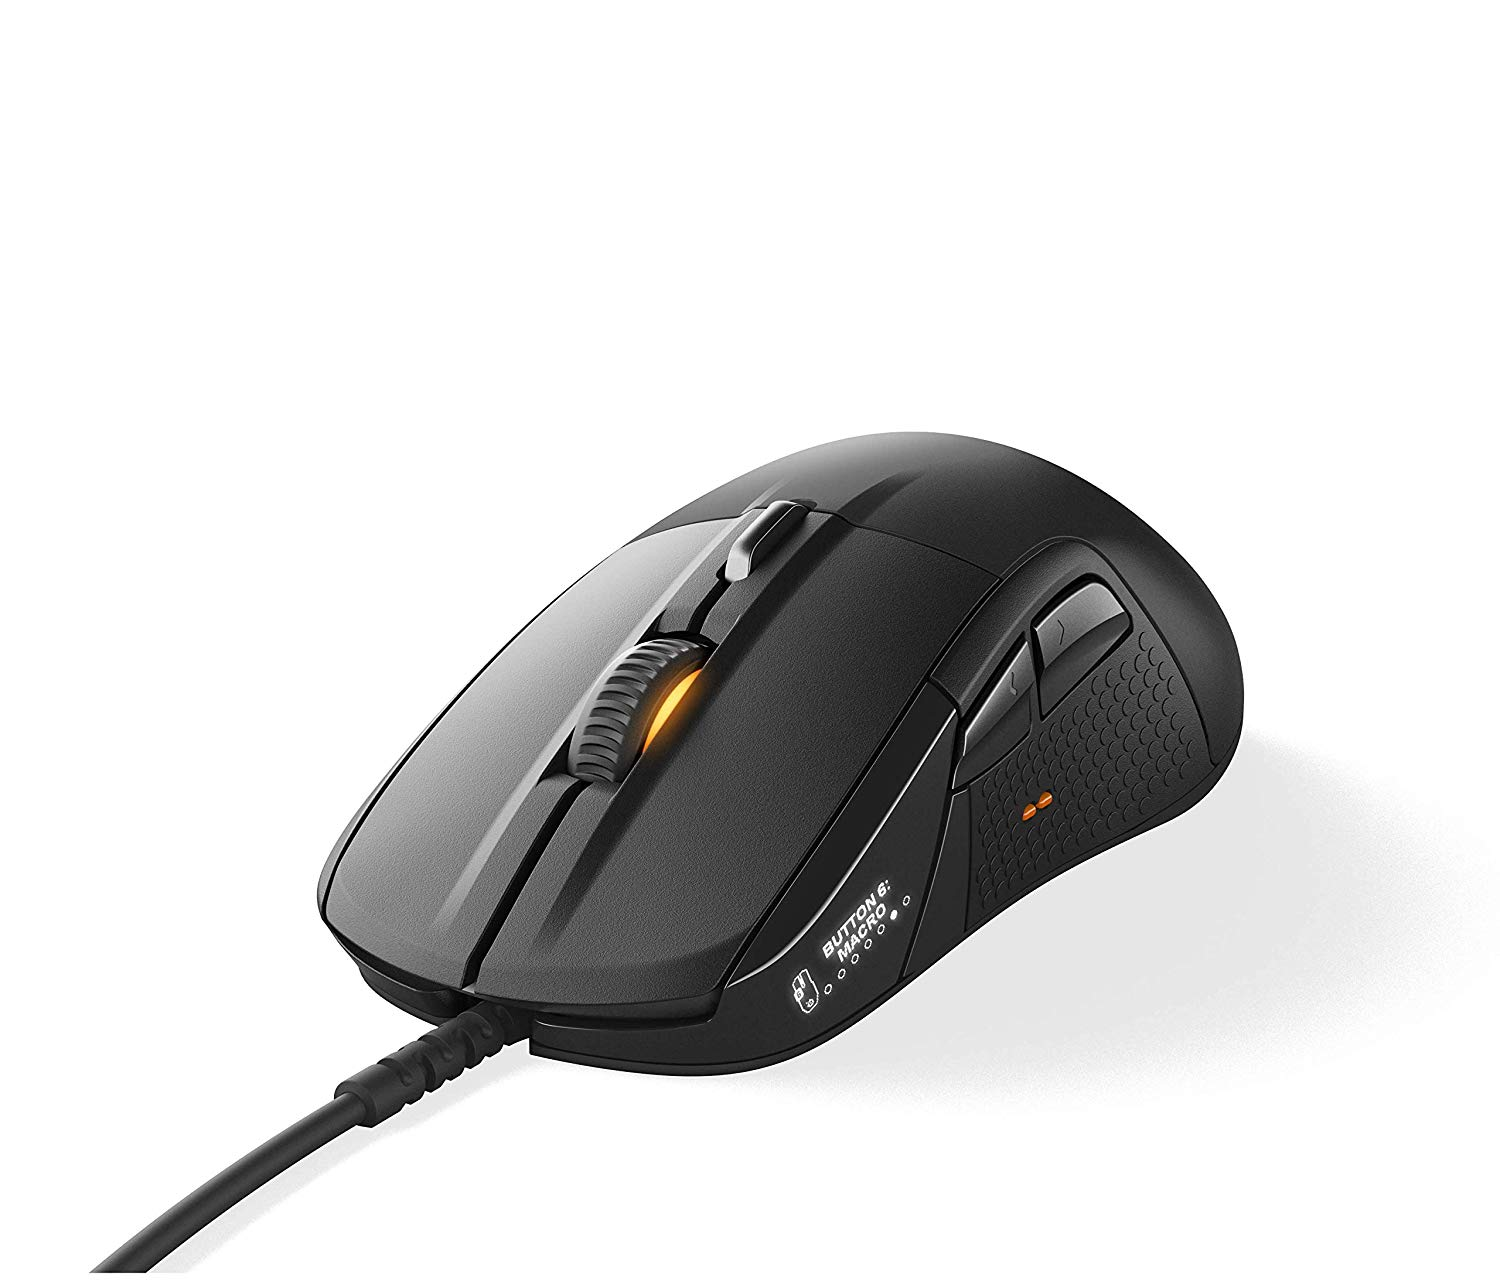 SteelSeries Rival 710